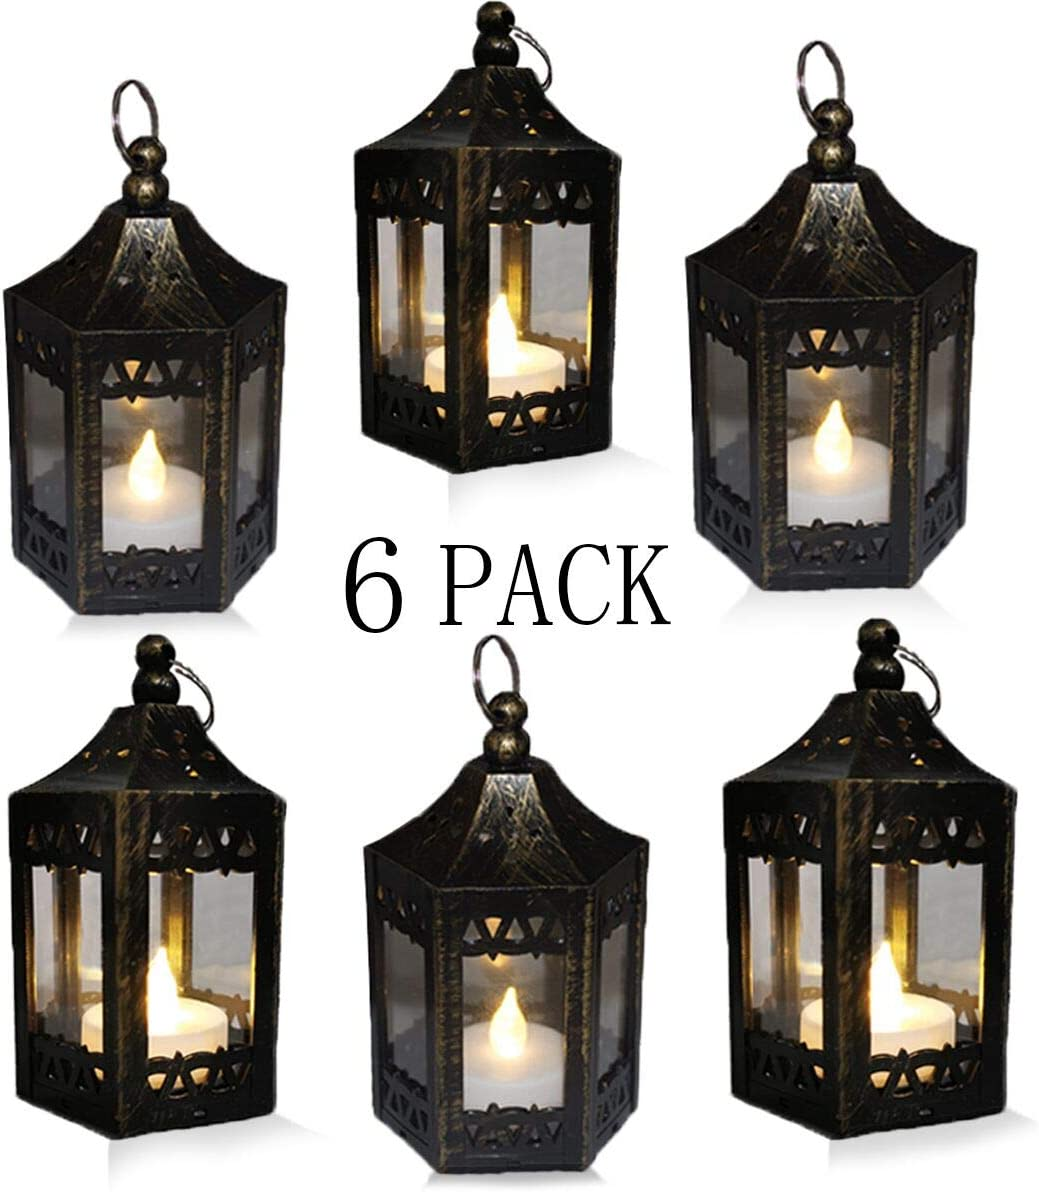 SHYMERY Mini Black Candle Lanterns,Vintage Style Decorative Hanging Small Lantern with Flickering LED for Halloween,Christmas,Wedding,Table Centerpiece, Accent Piece and Party Favor (Pack of 6)